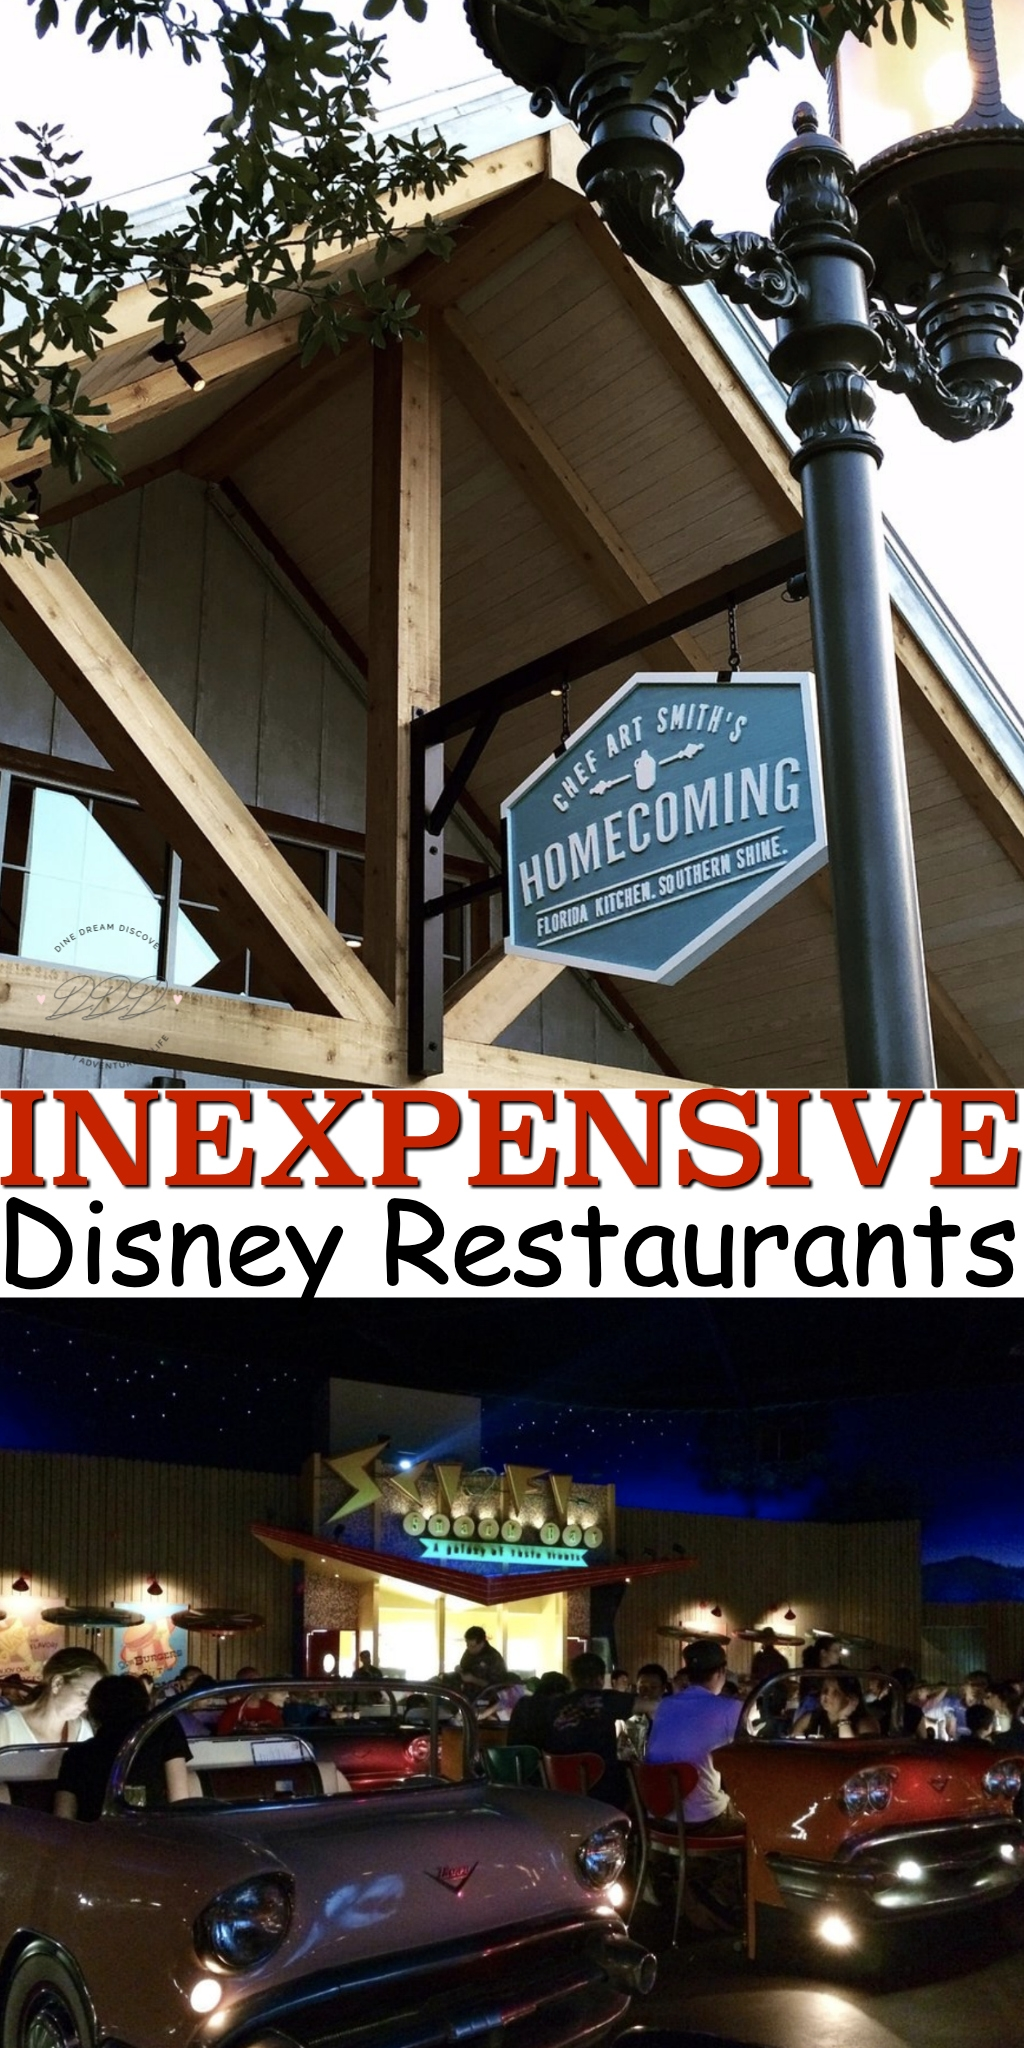 Here are five of the best themed Disney World restaurants that happen to be relatively inexpensive with some good old fashioned imagineering that goes a really long way.